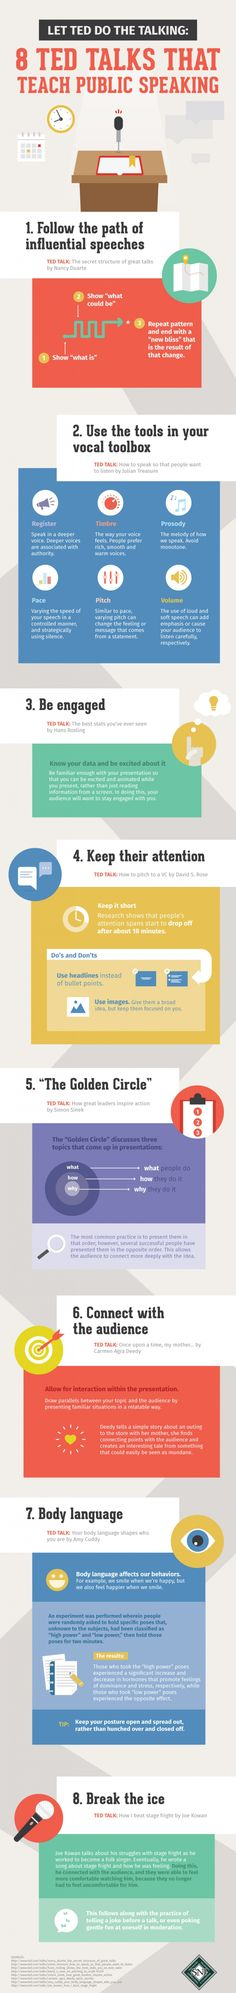 Top 8 TED Talks on How to Give a Great TED Talk #Infographics